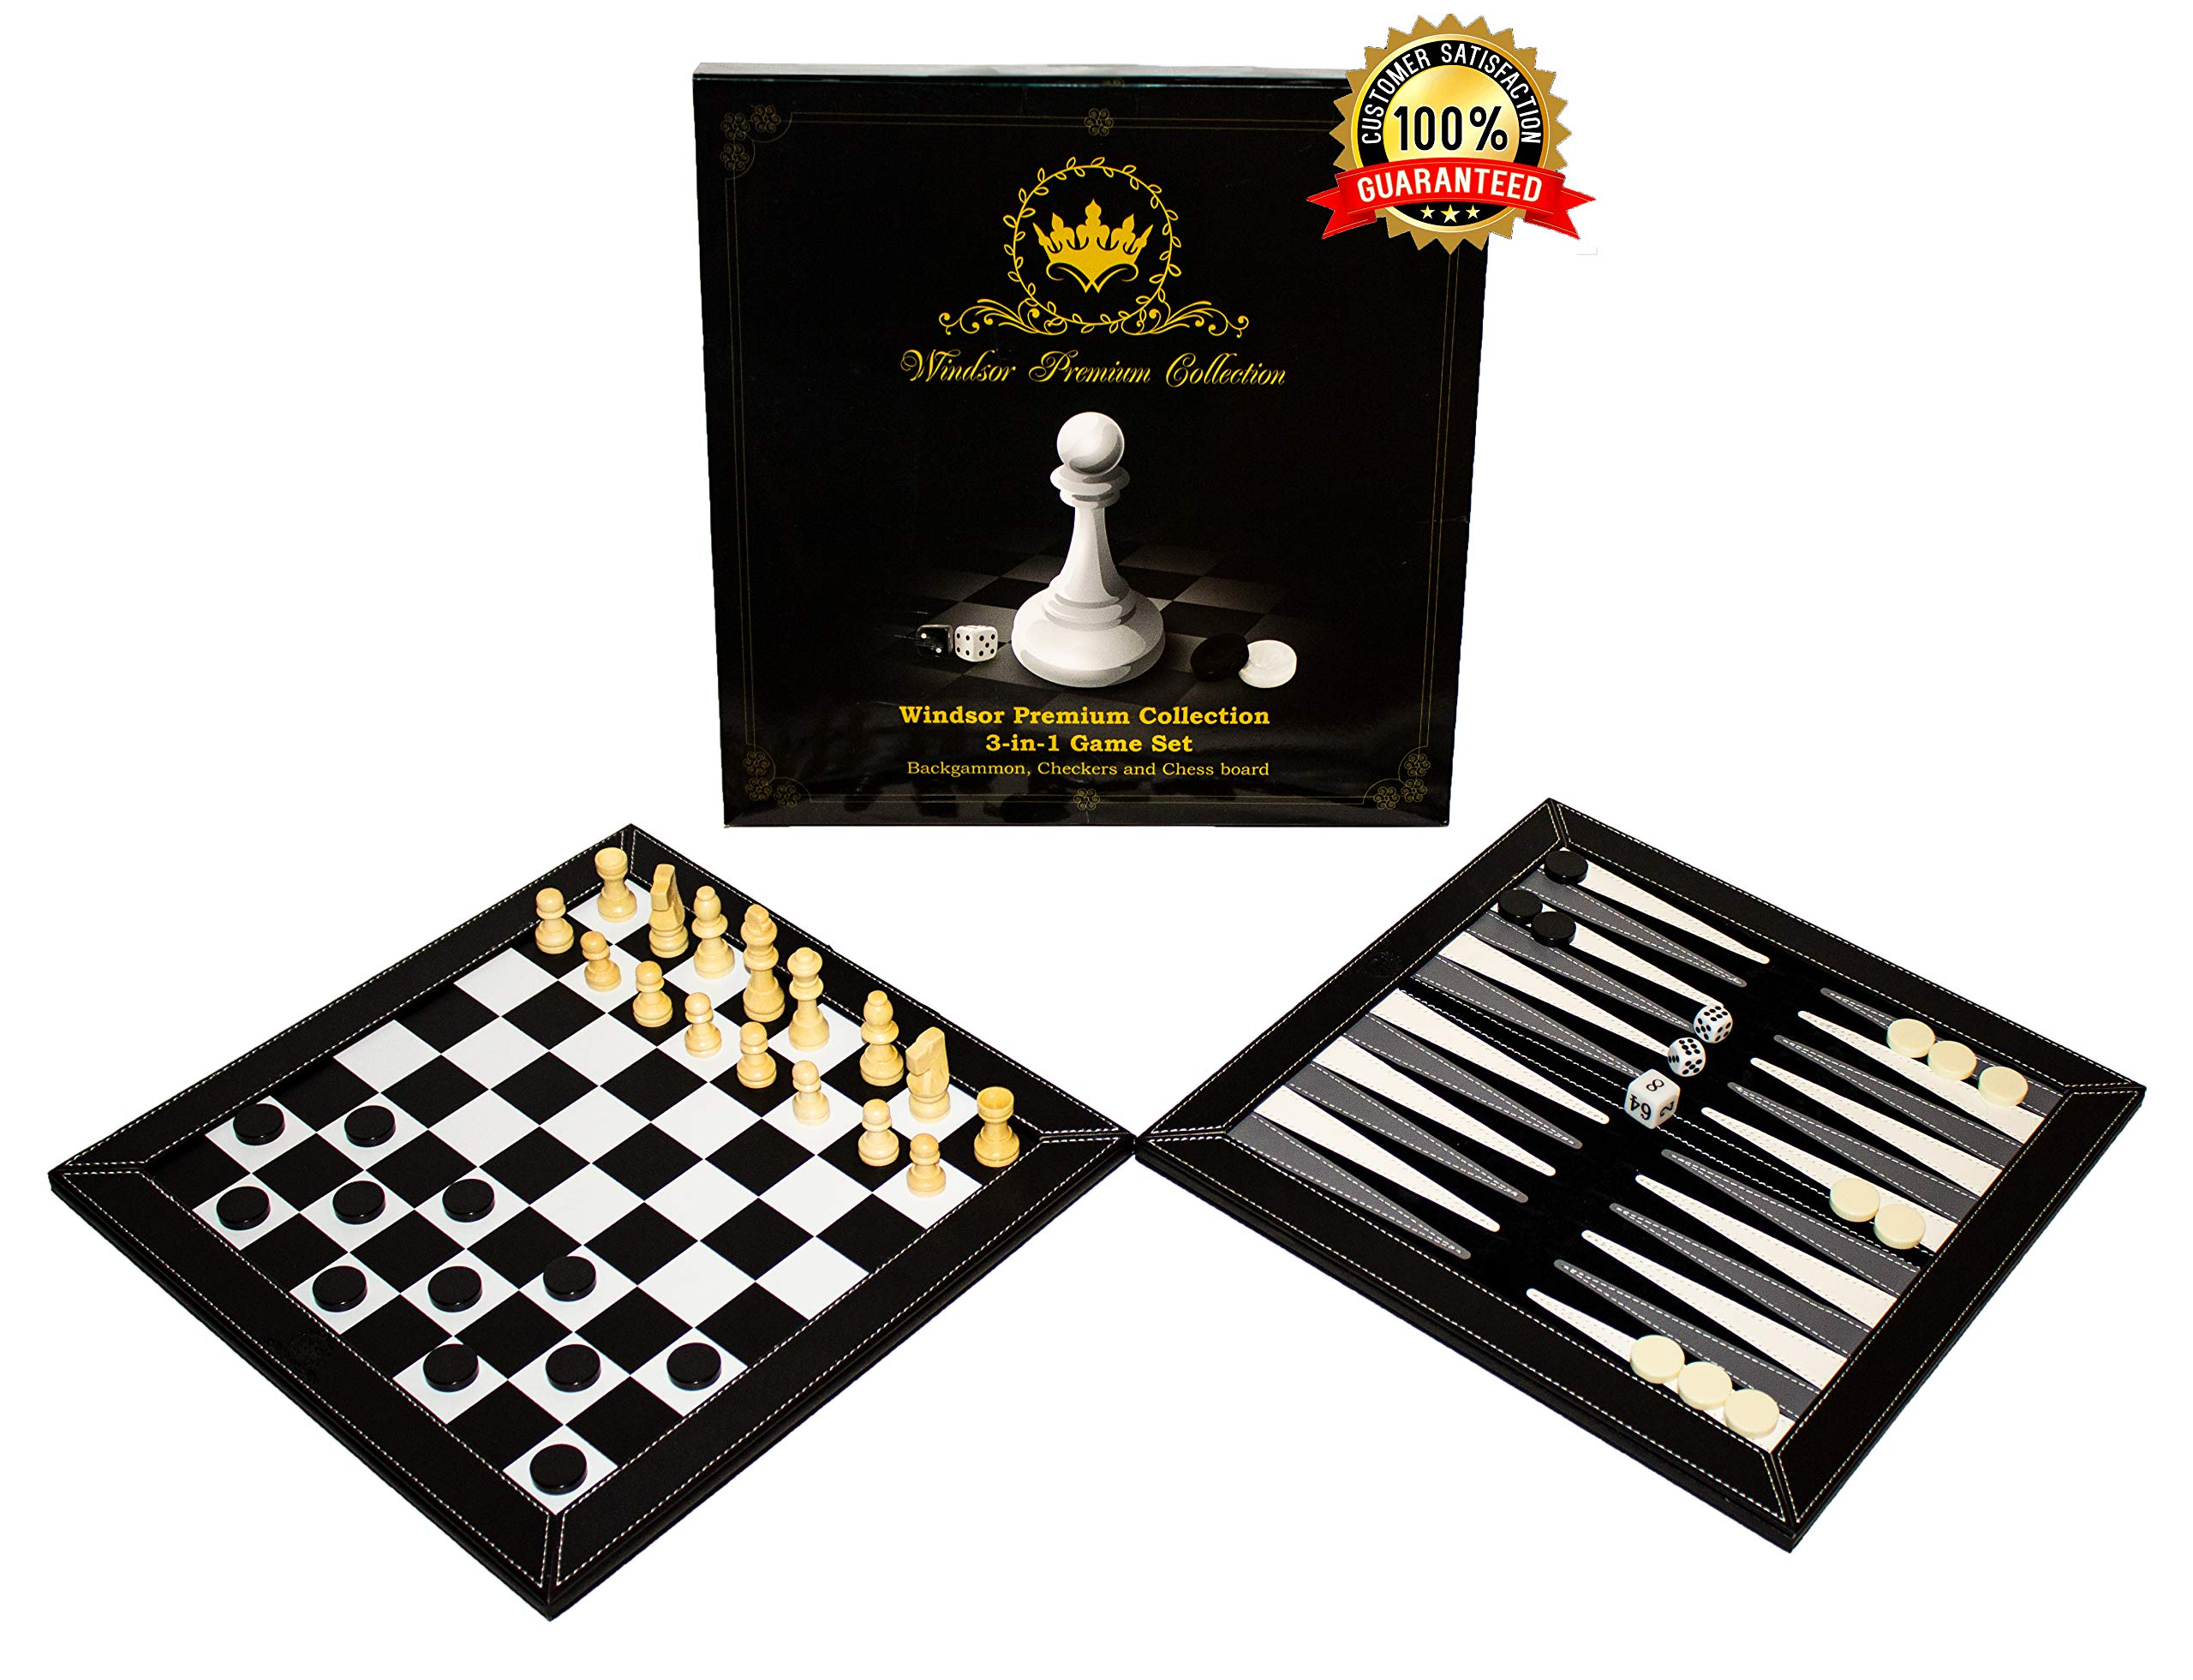 Windsor Premium Collection 3-in-1 Game Set